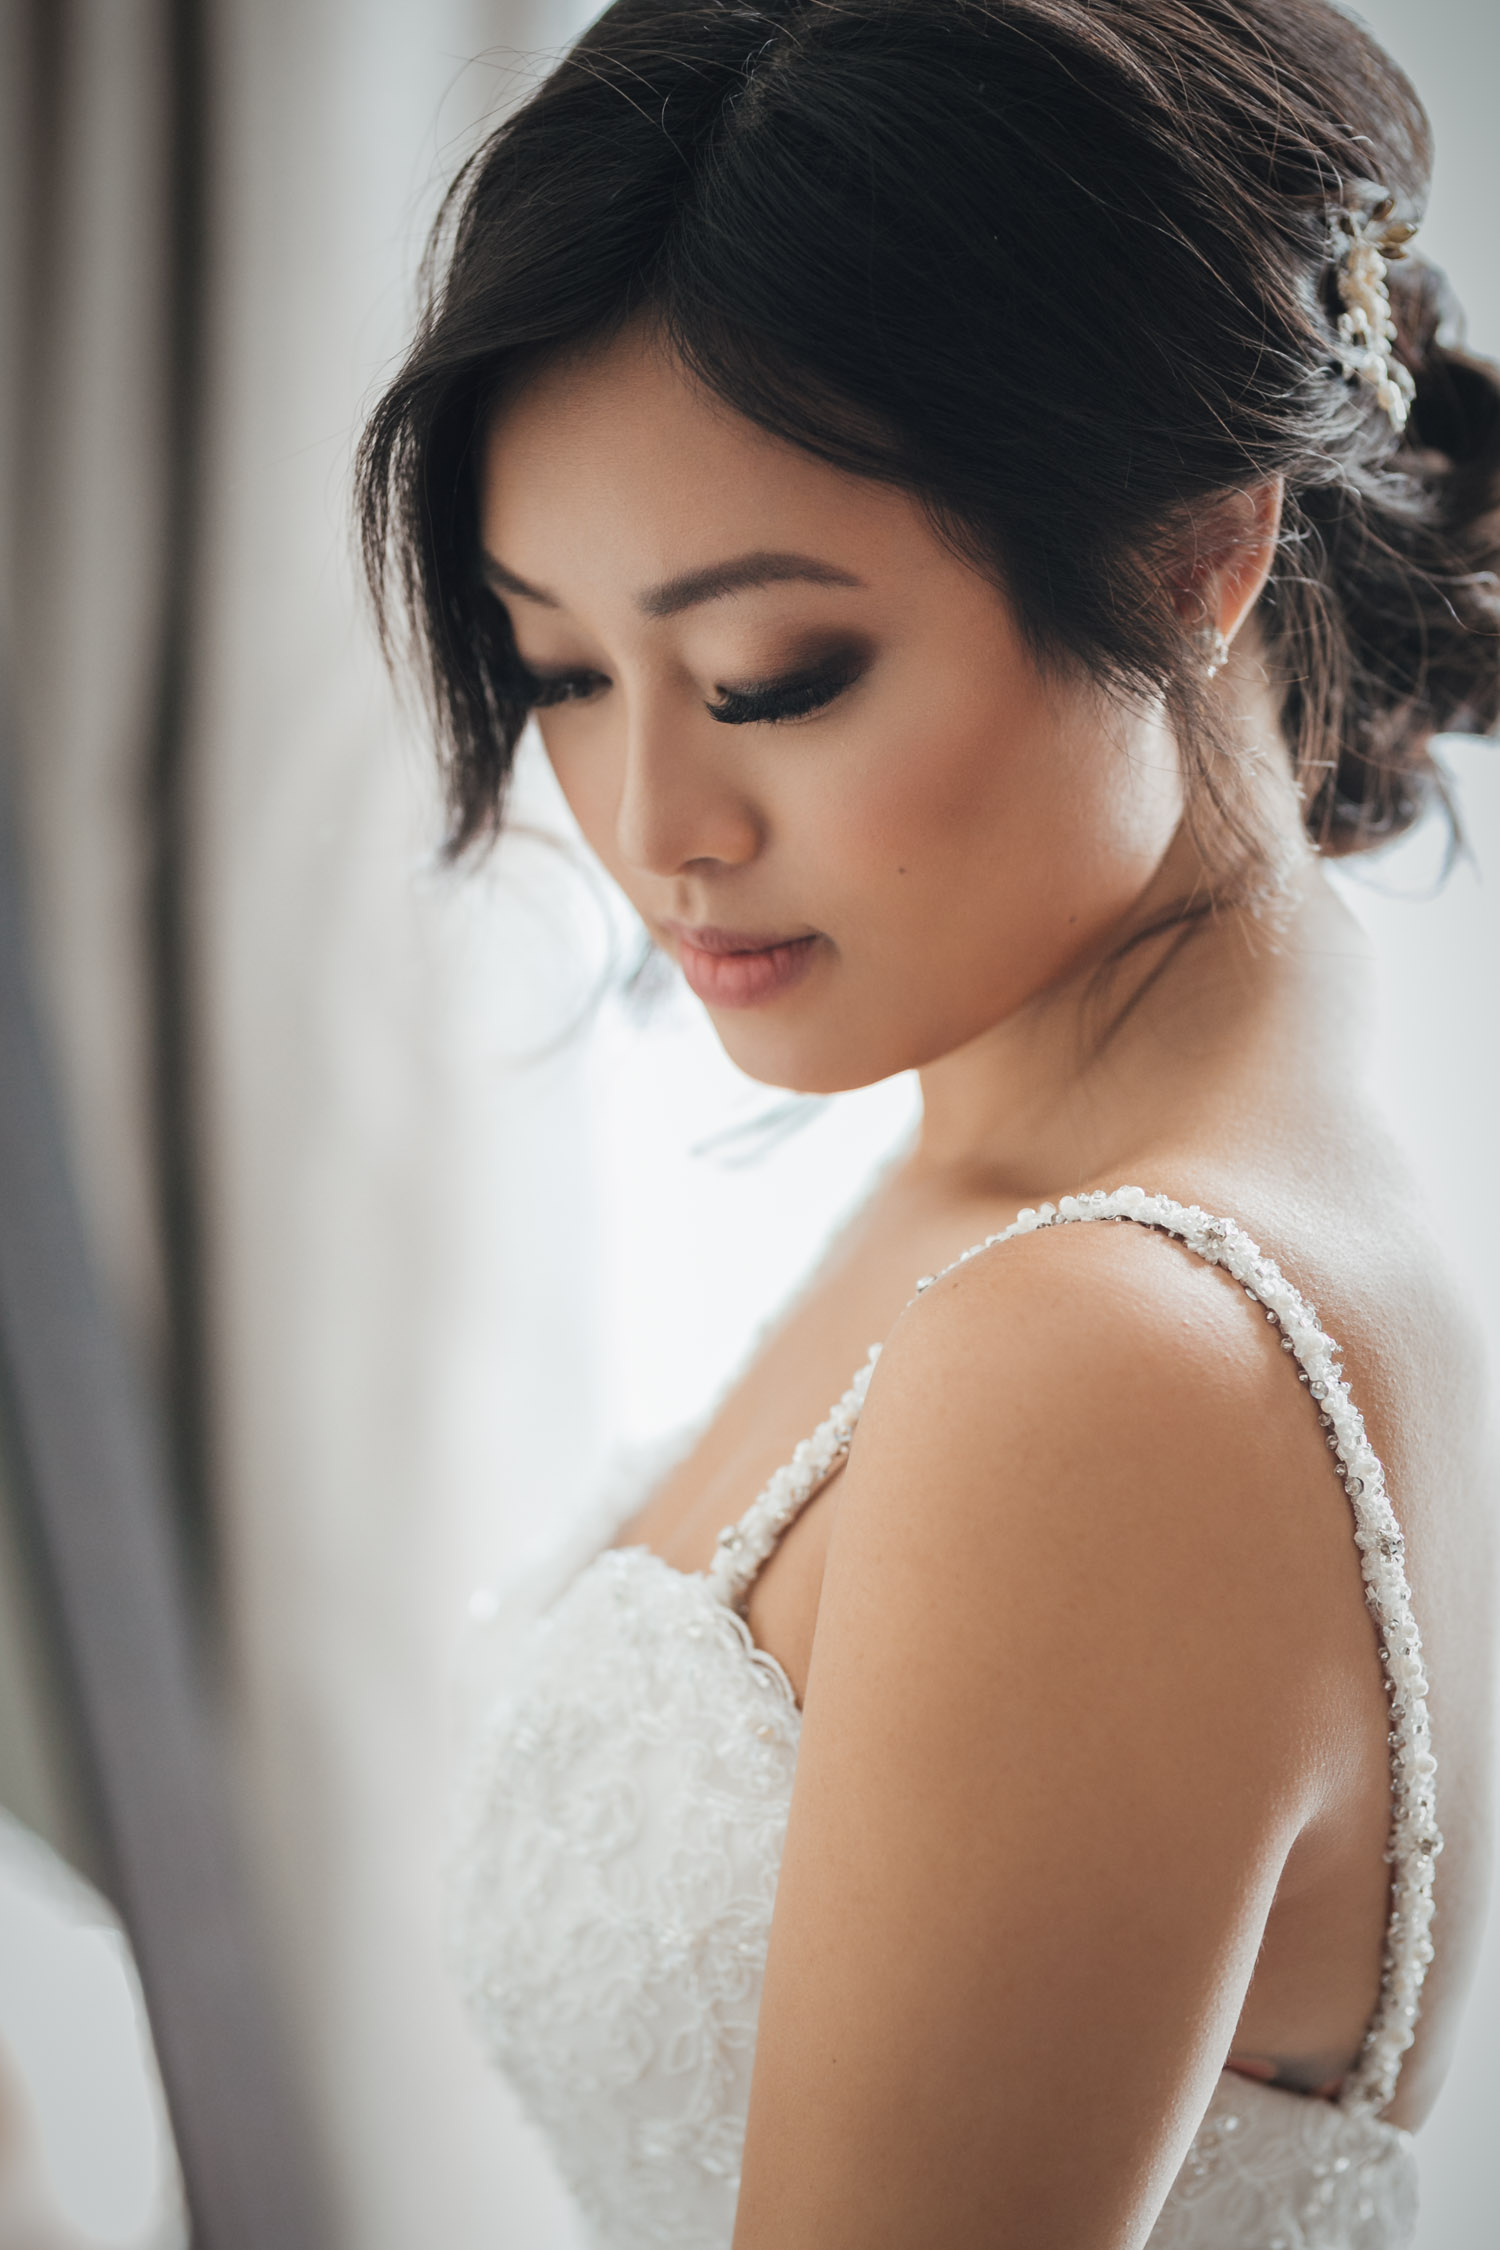 bride getting ready rosewood hotel georgia vancouver wedding photography